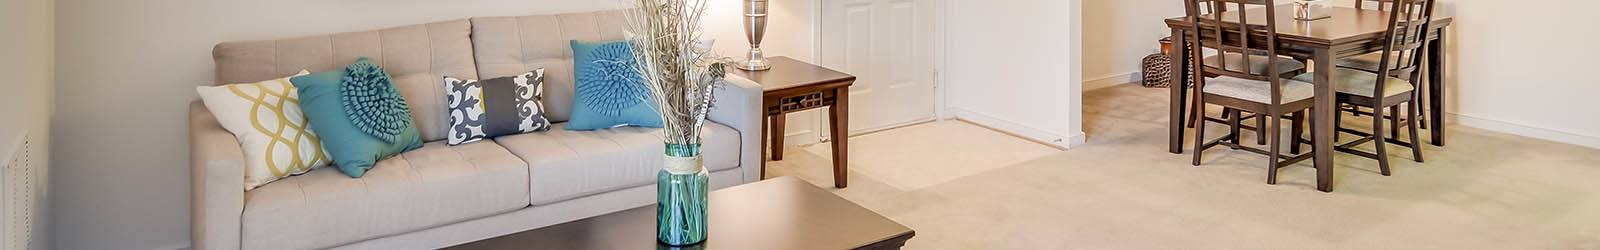 Apply now to live at Creekpointe in Midlothian